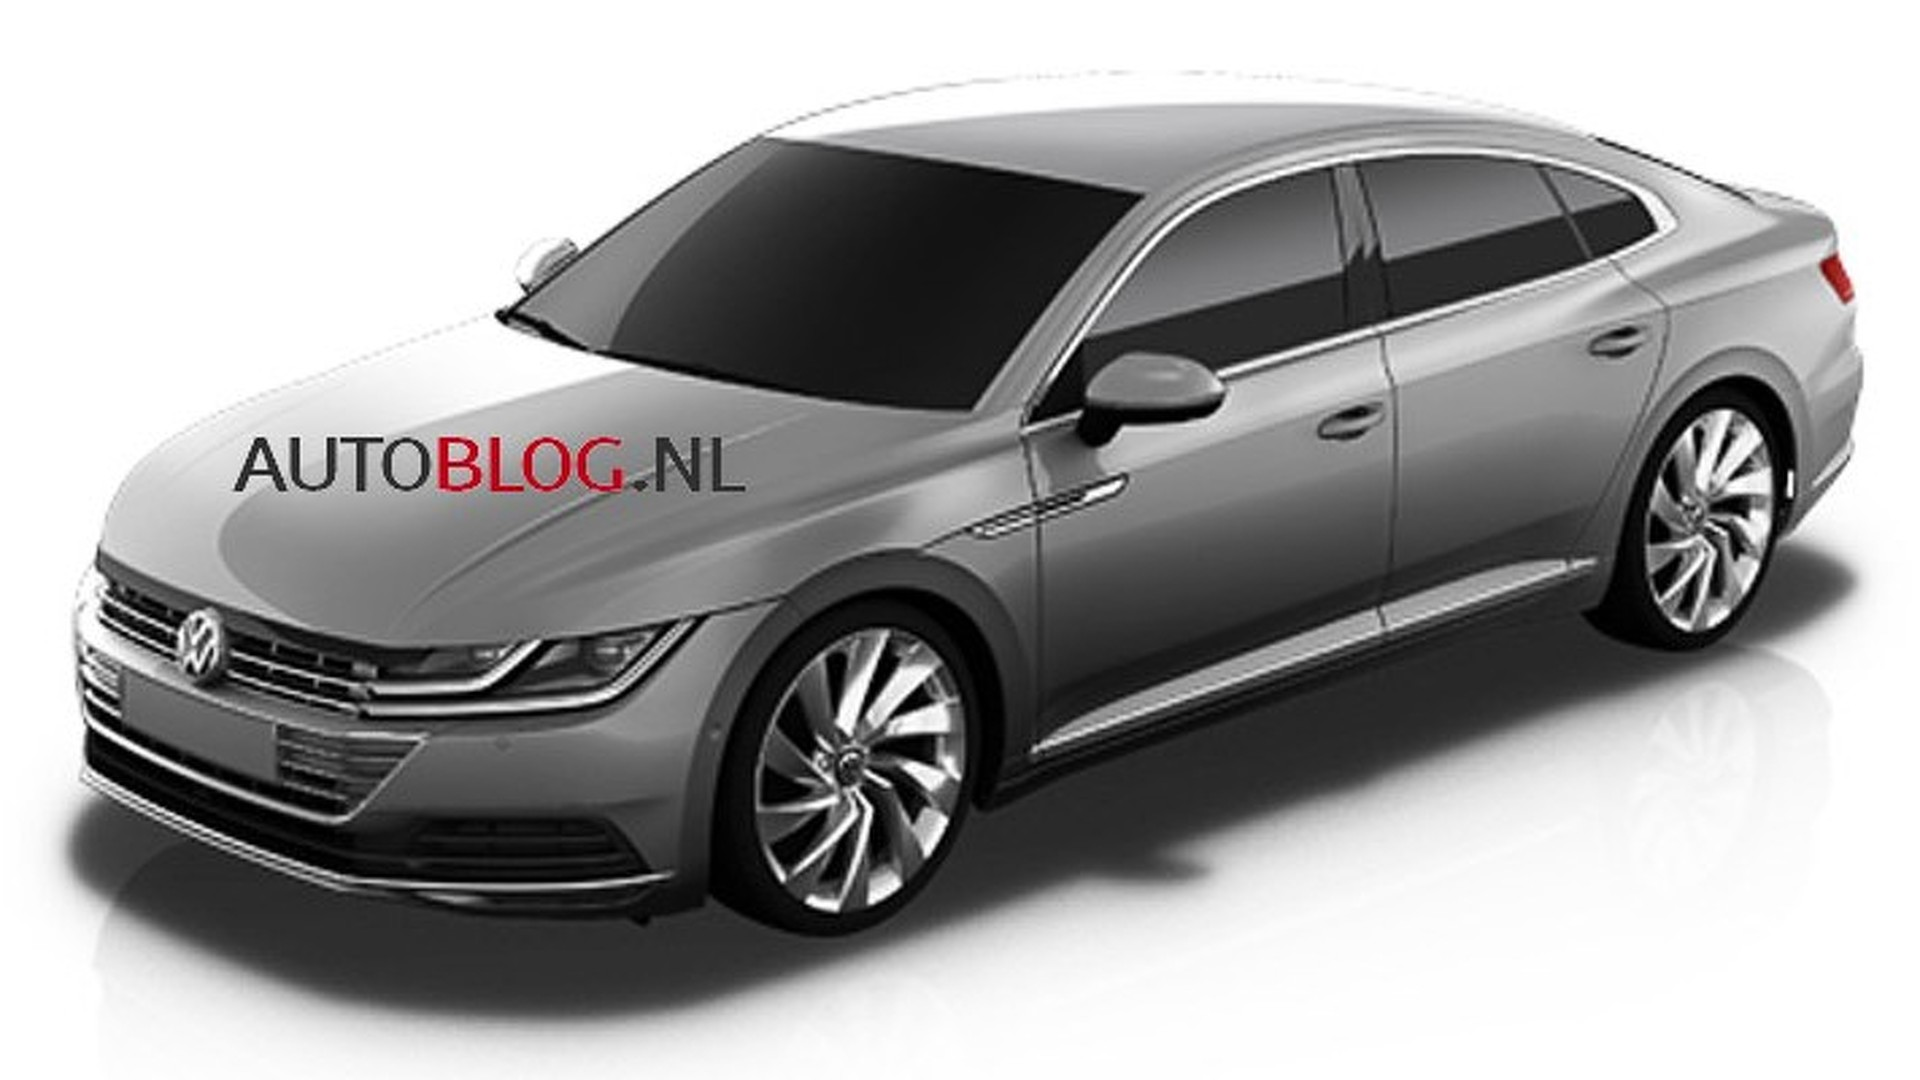 2018 volkswagen cc photos leaked follow same design as golf facelift autoevolution. Black Bedroom Furniture Sets. Home Design Ideas